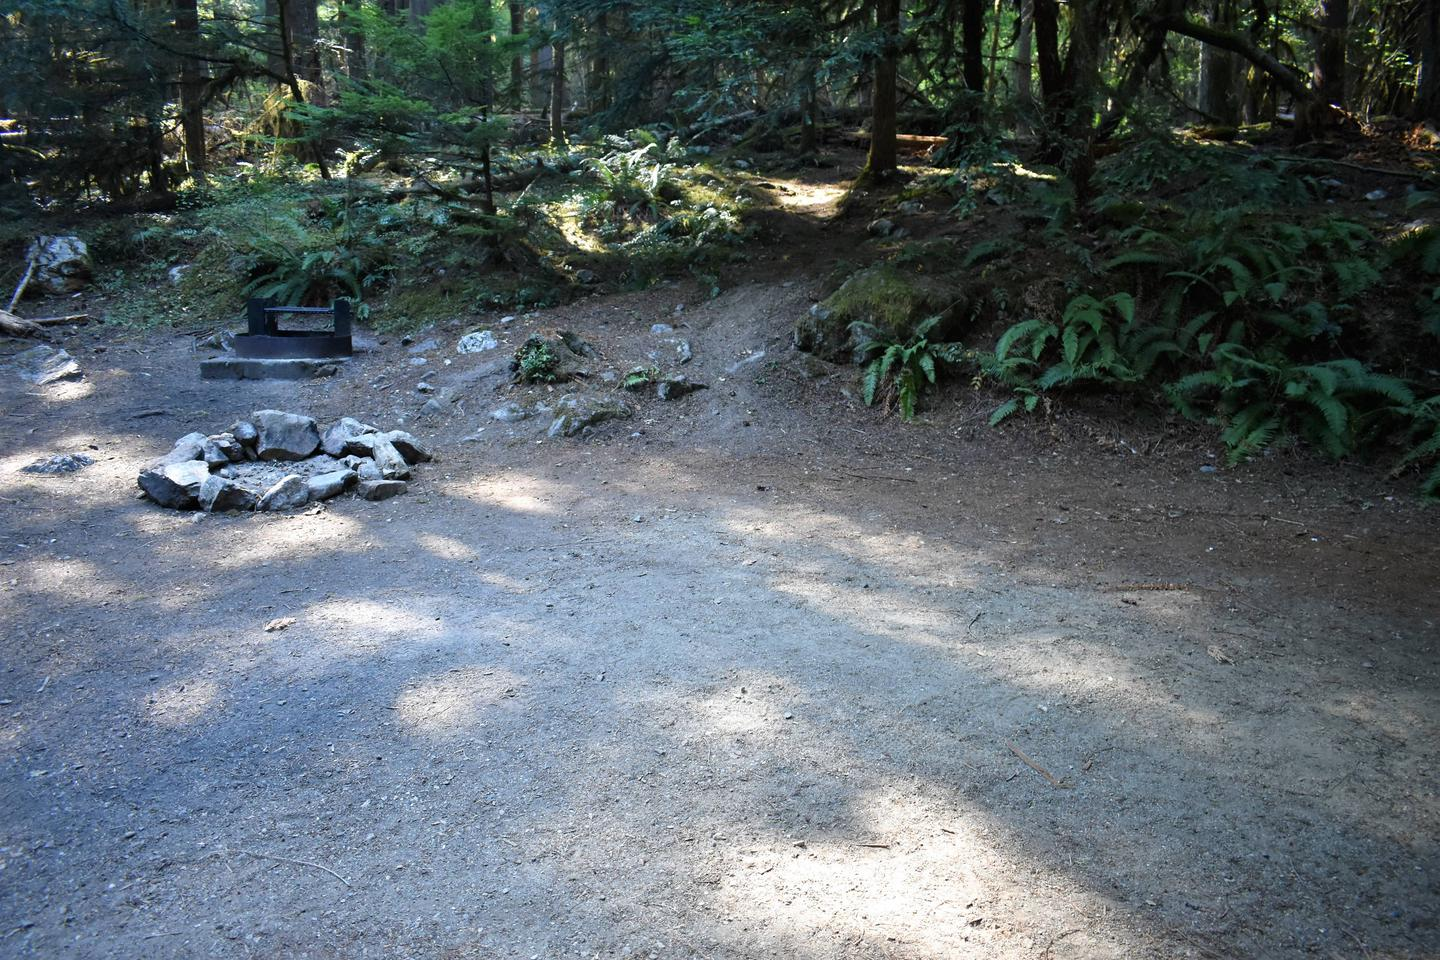 Fire ring and tent areaView of campsite